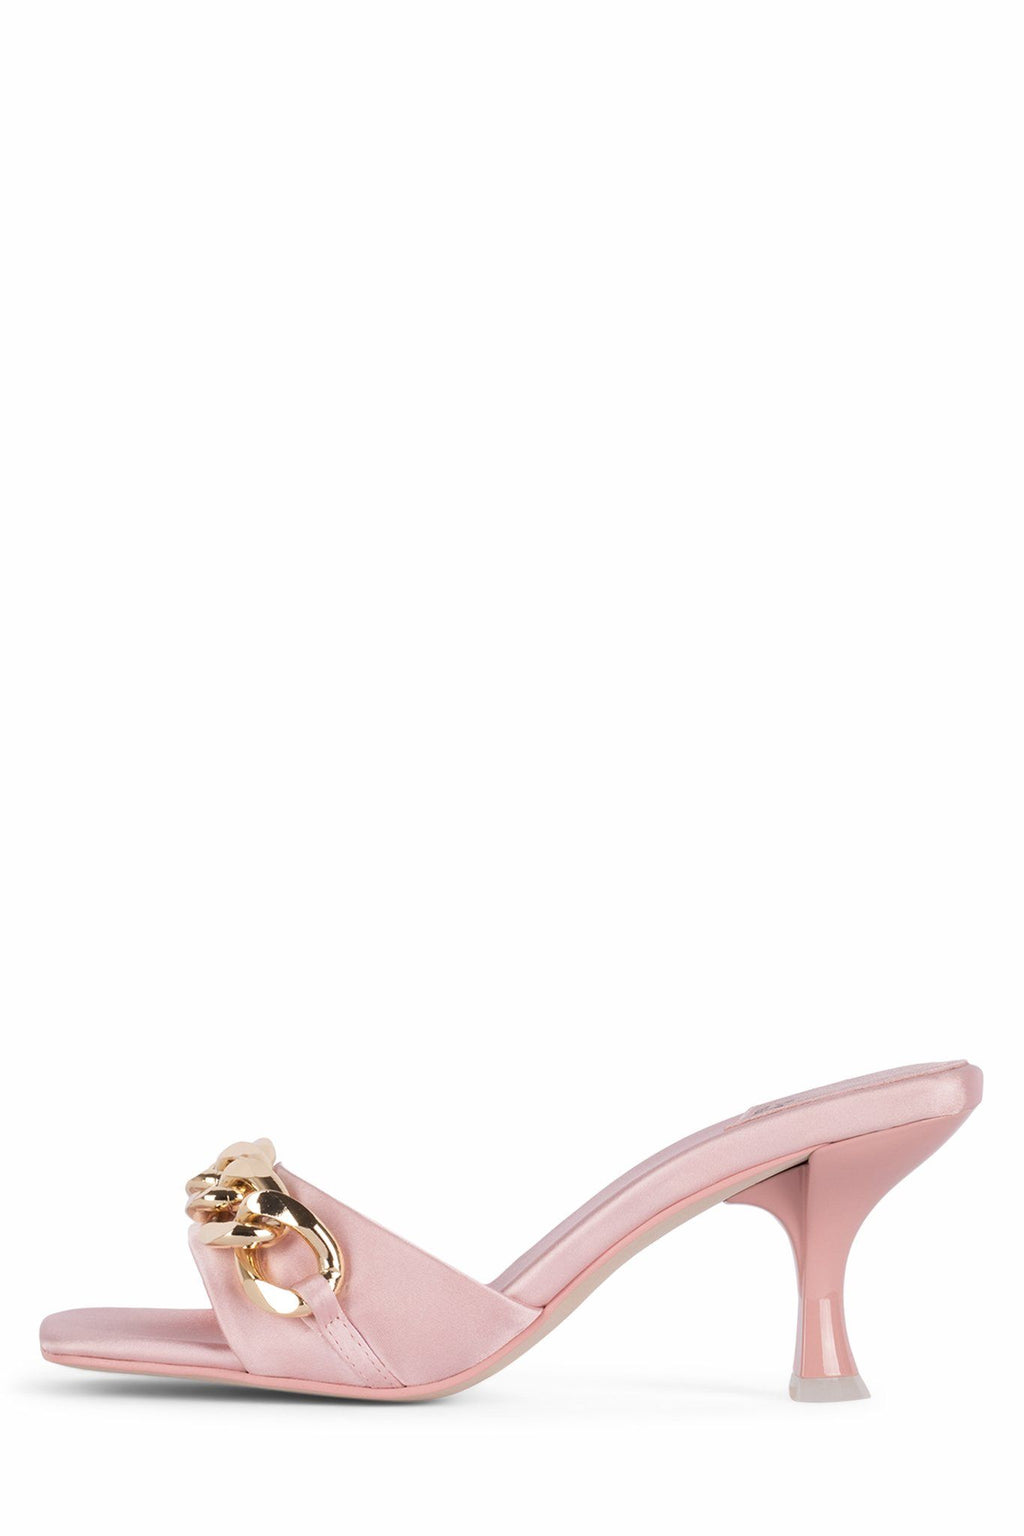 MR-BIG-CH YYH Pink Satin Gold 6